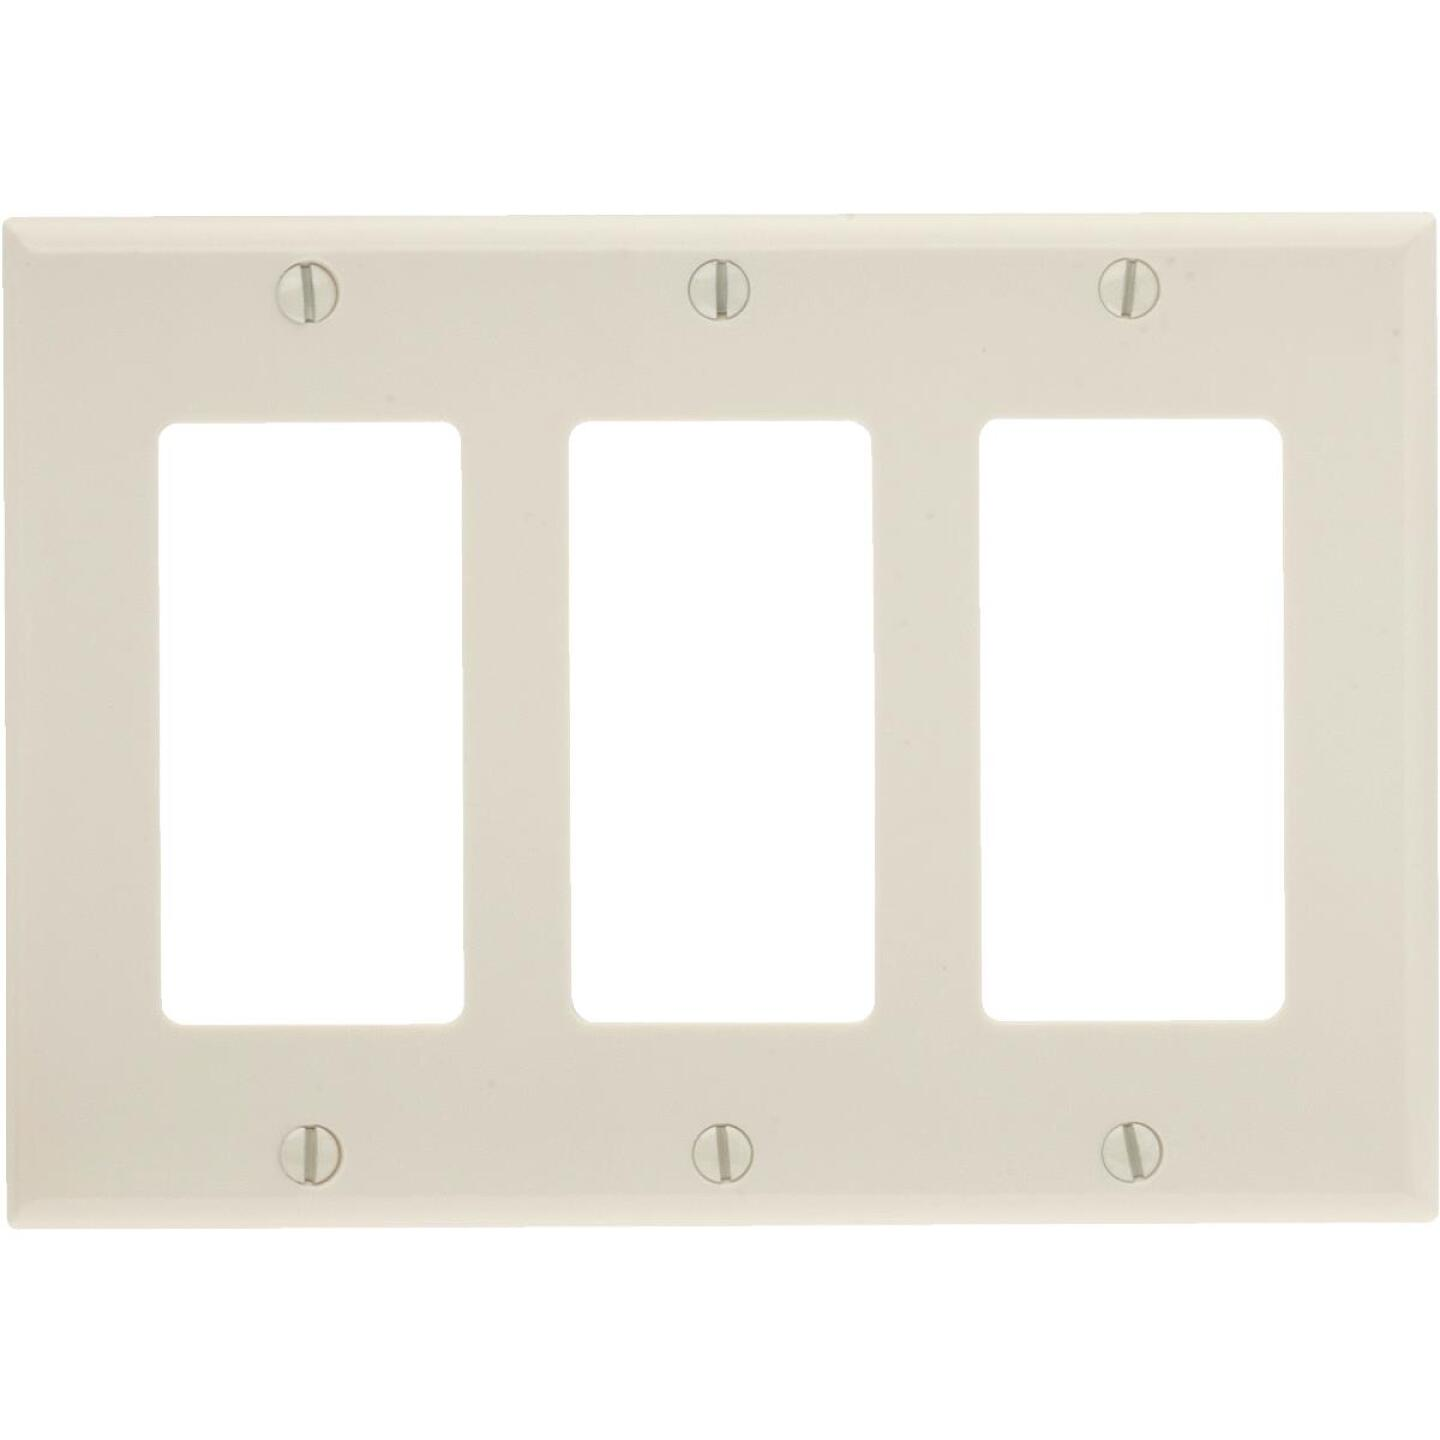 Leviton Decora 3-Gang Smooth Plastic Rocker Decorator Wall Plate, Light Almond Image 1